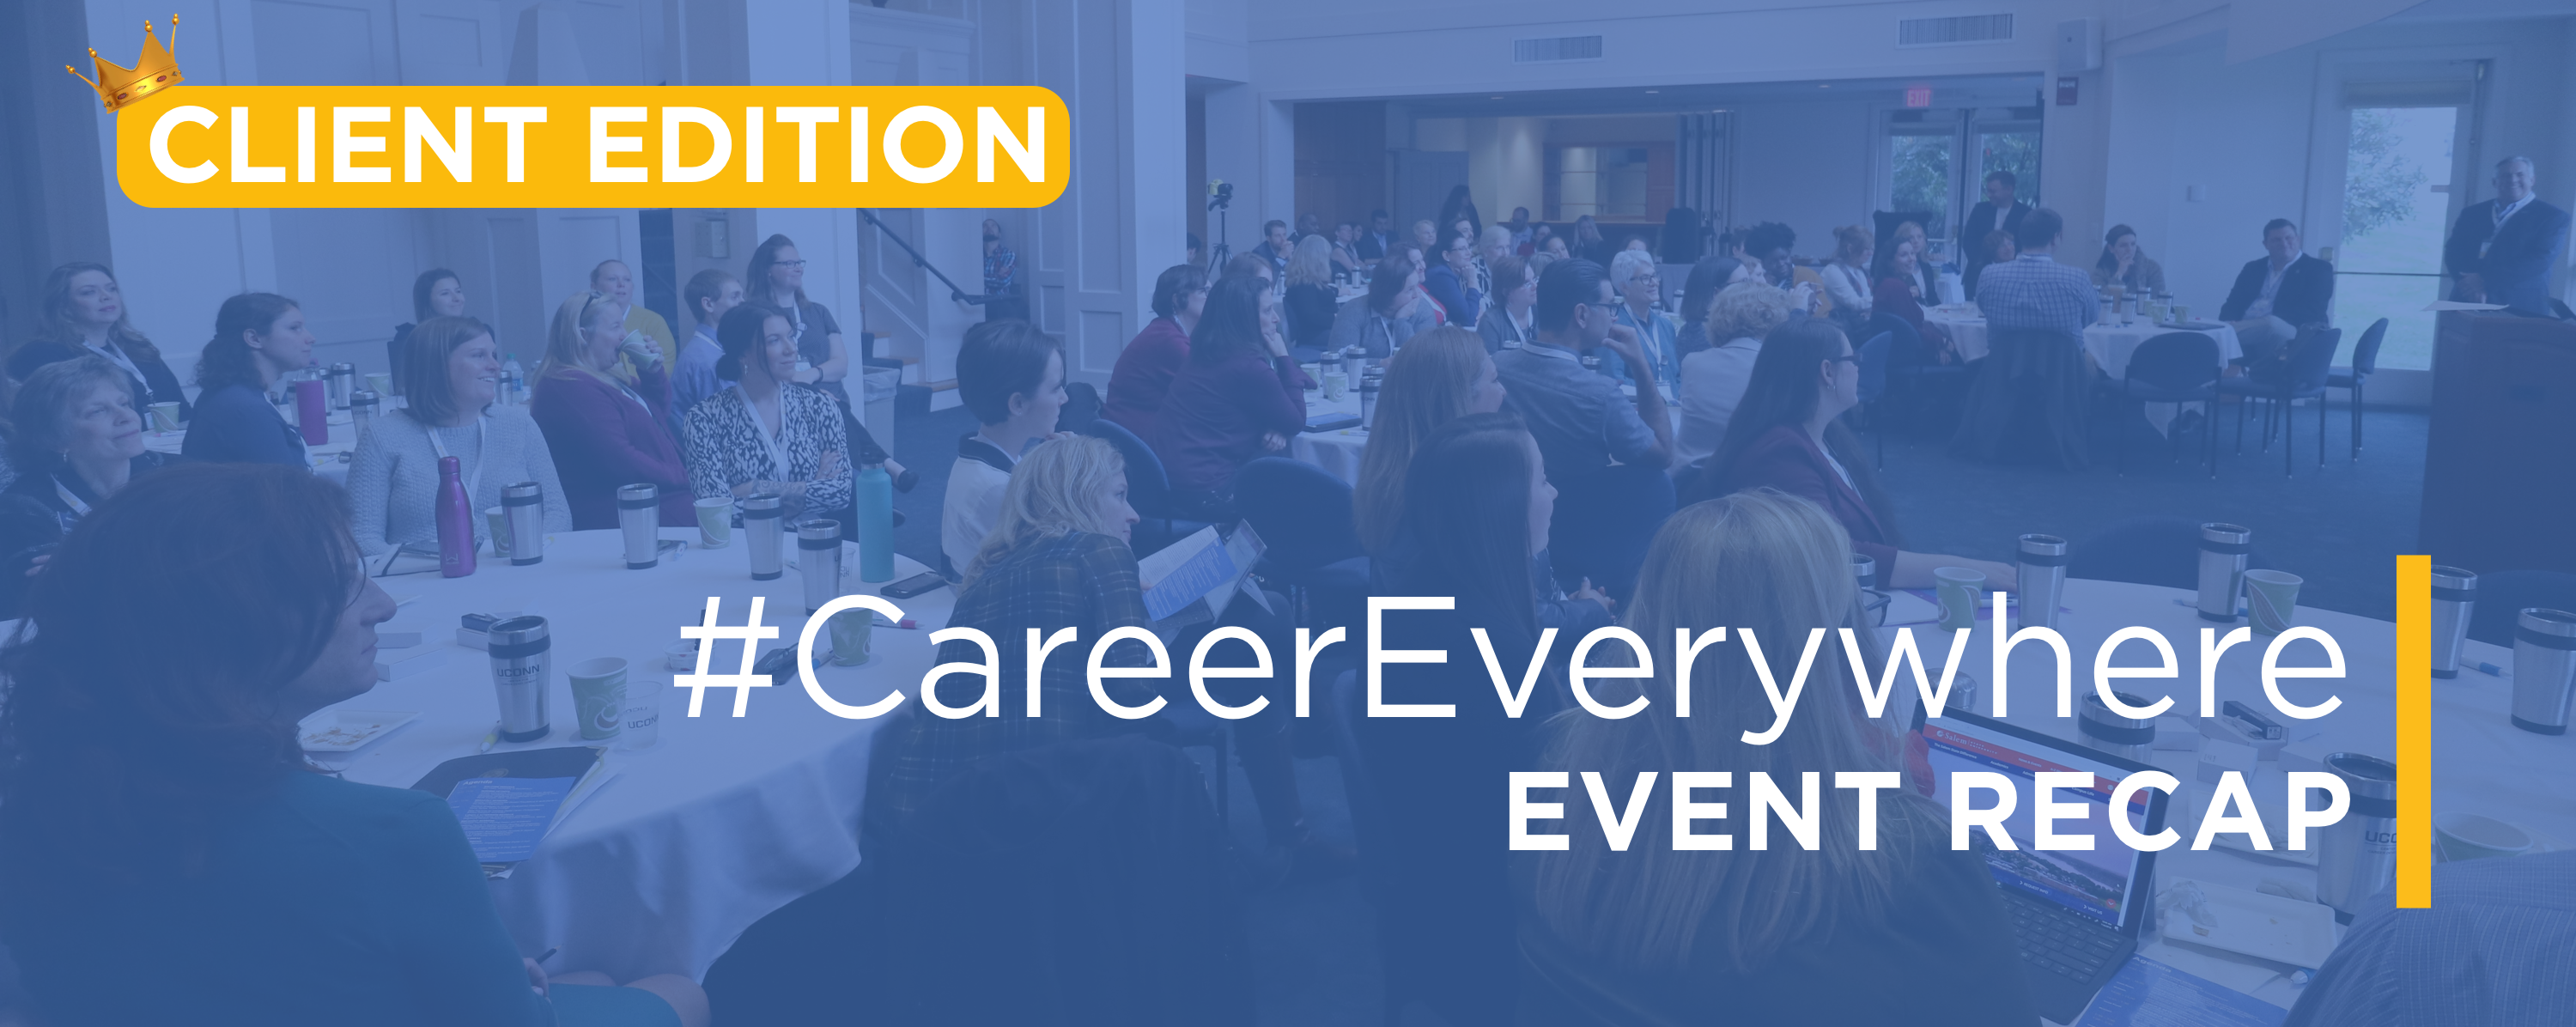 Client Edition: A Recap of #CareerEverywhere